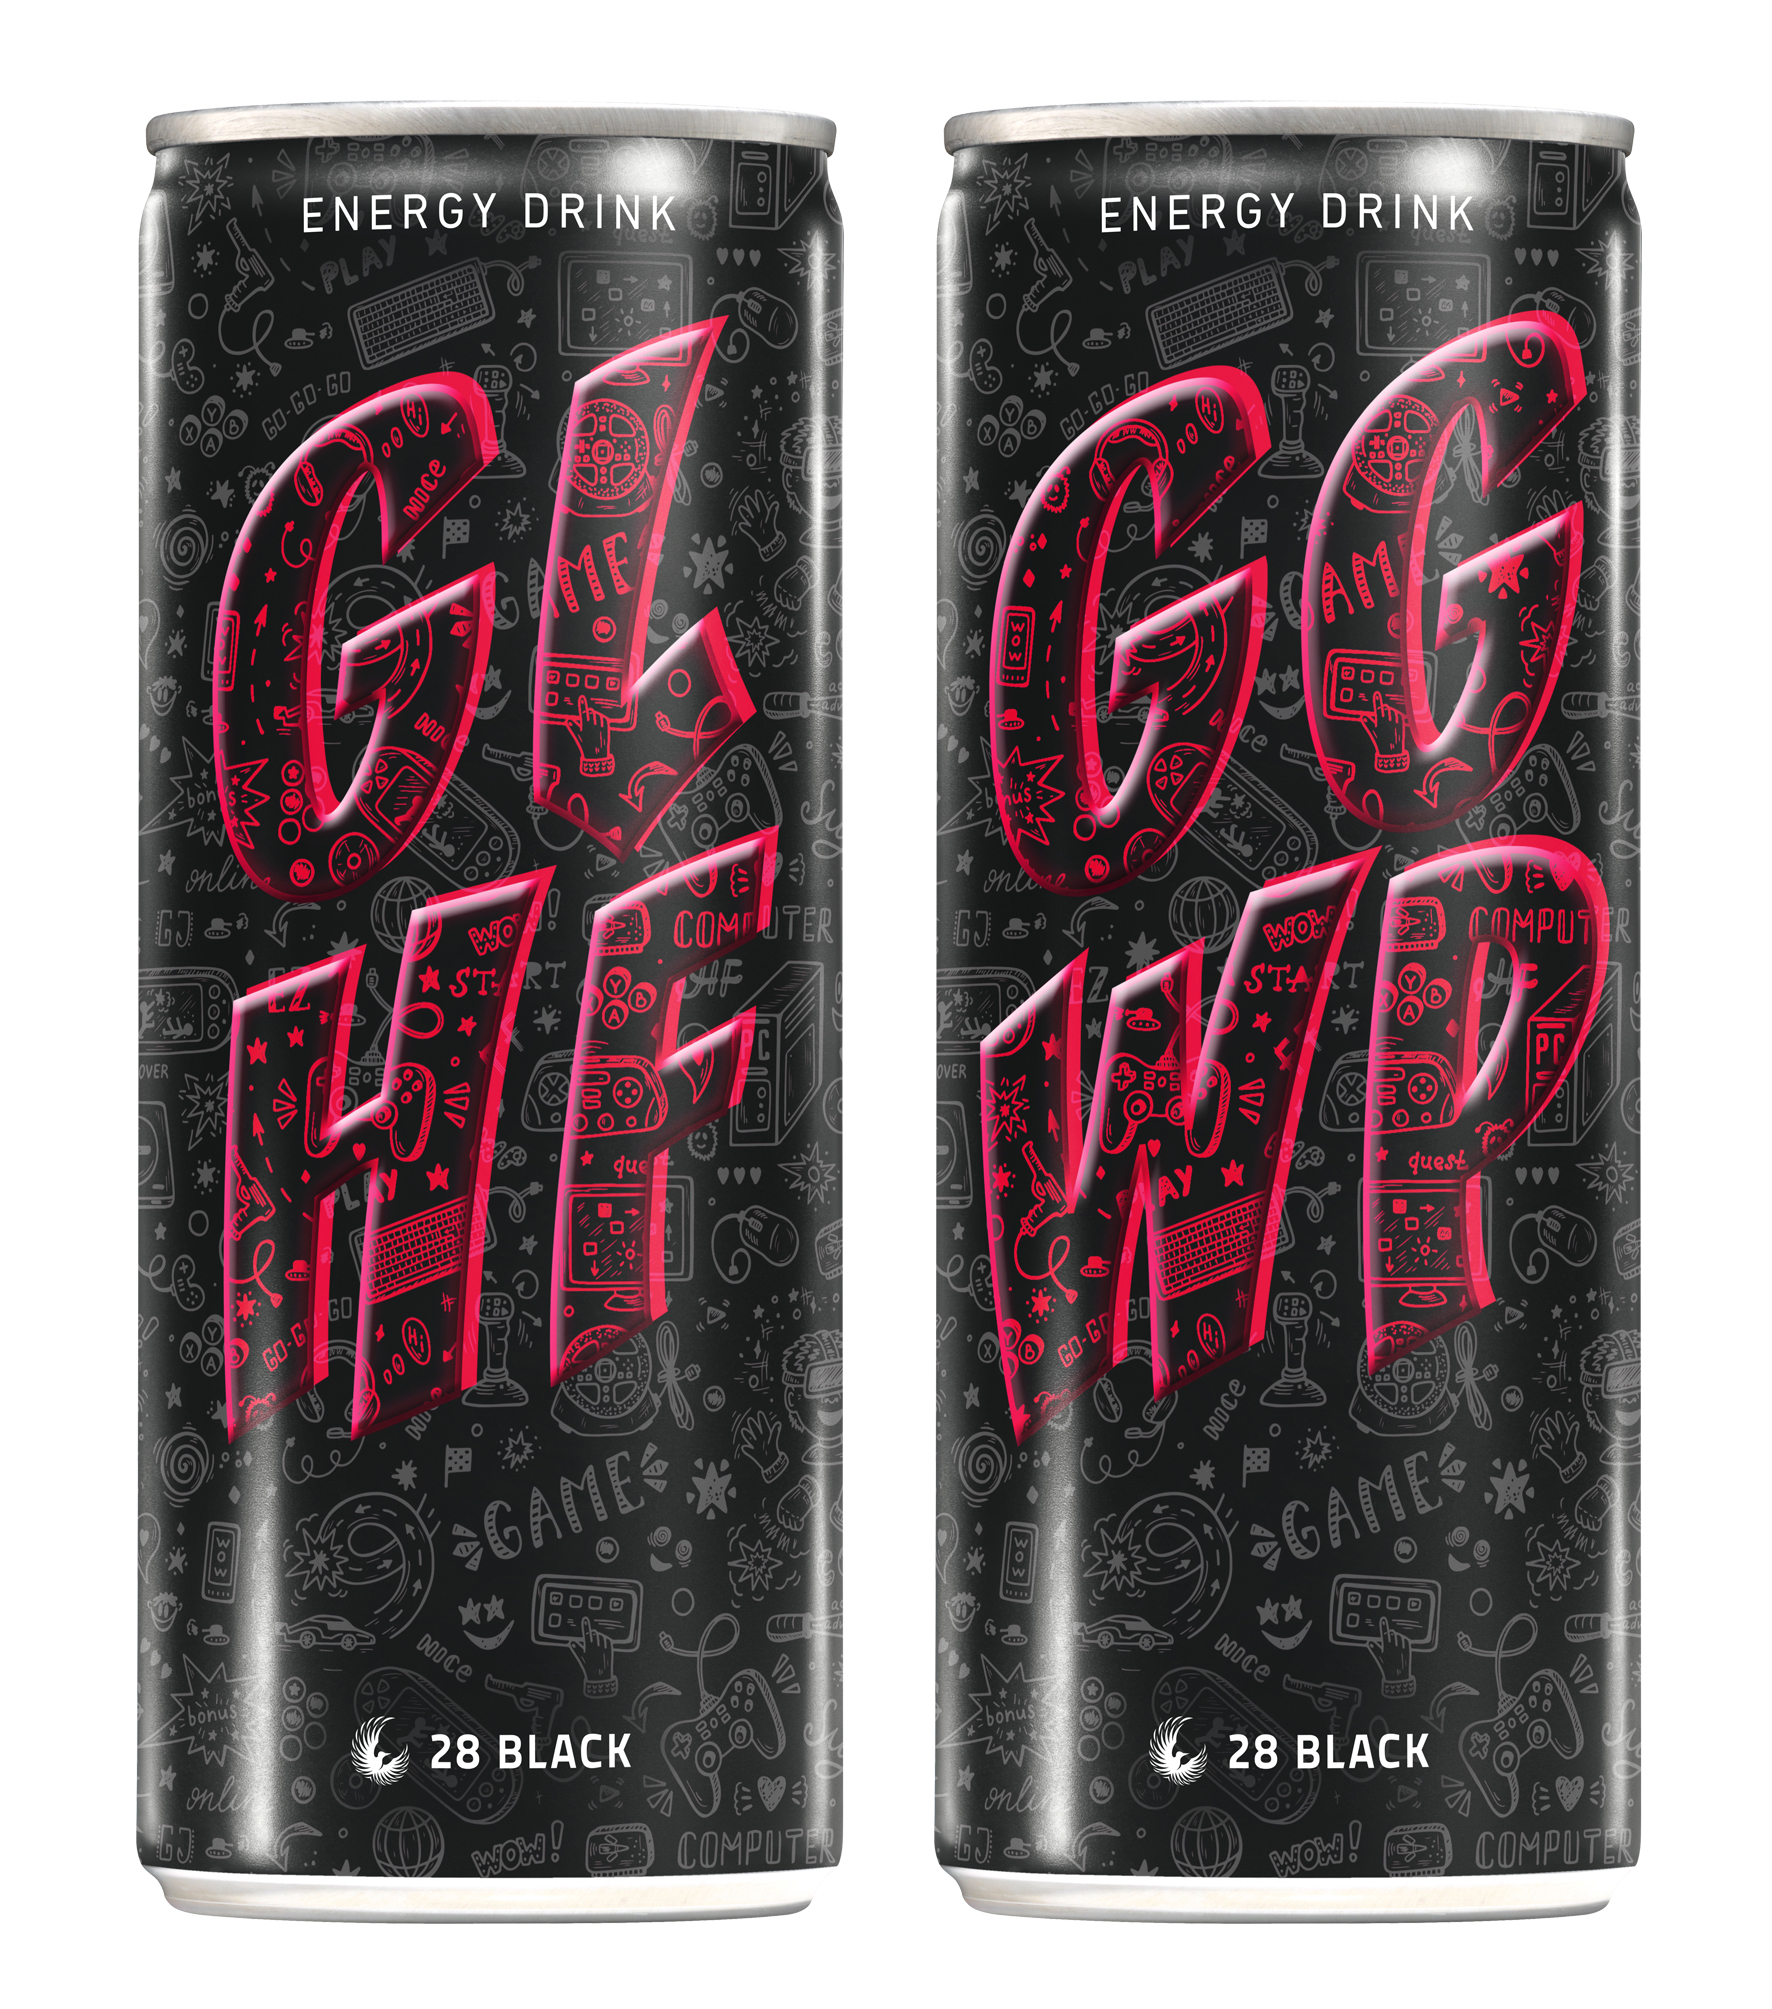 ▷ No Gaming without 28 BLACK / Energy Drink launcht limitierte ...